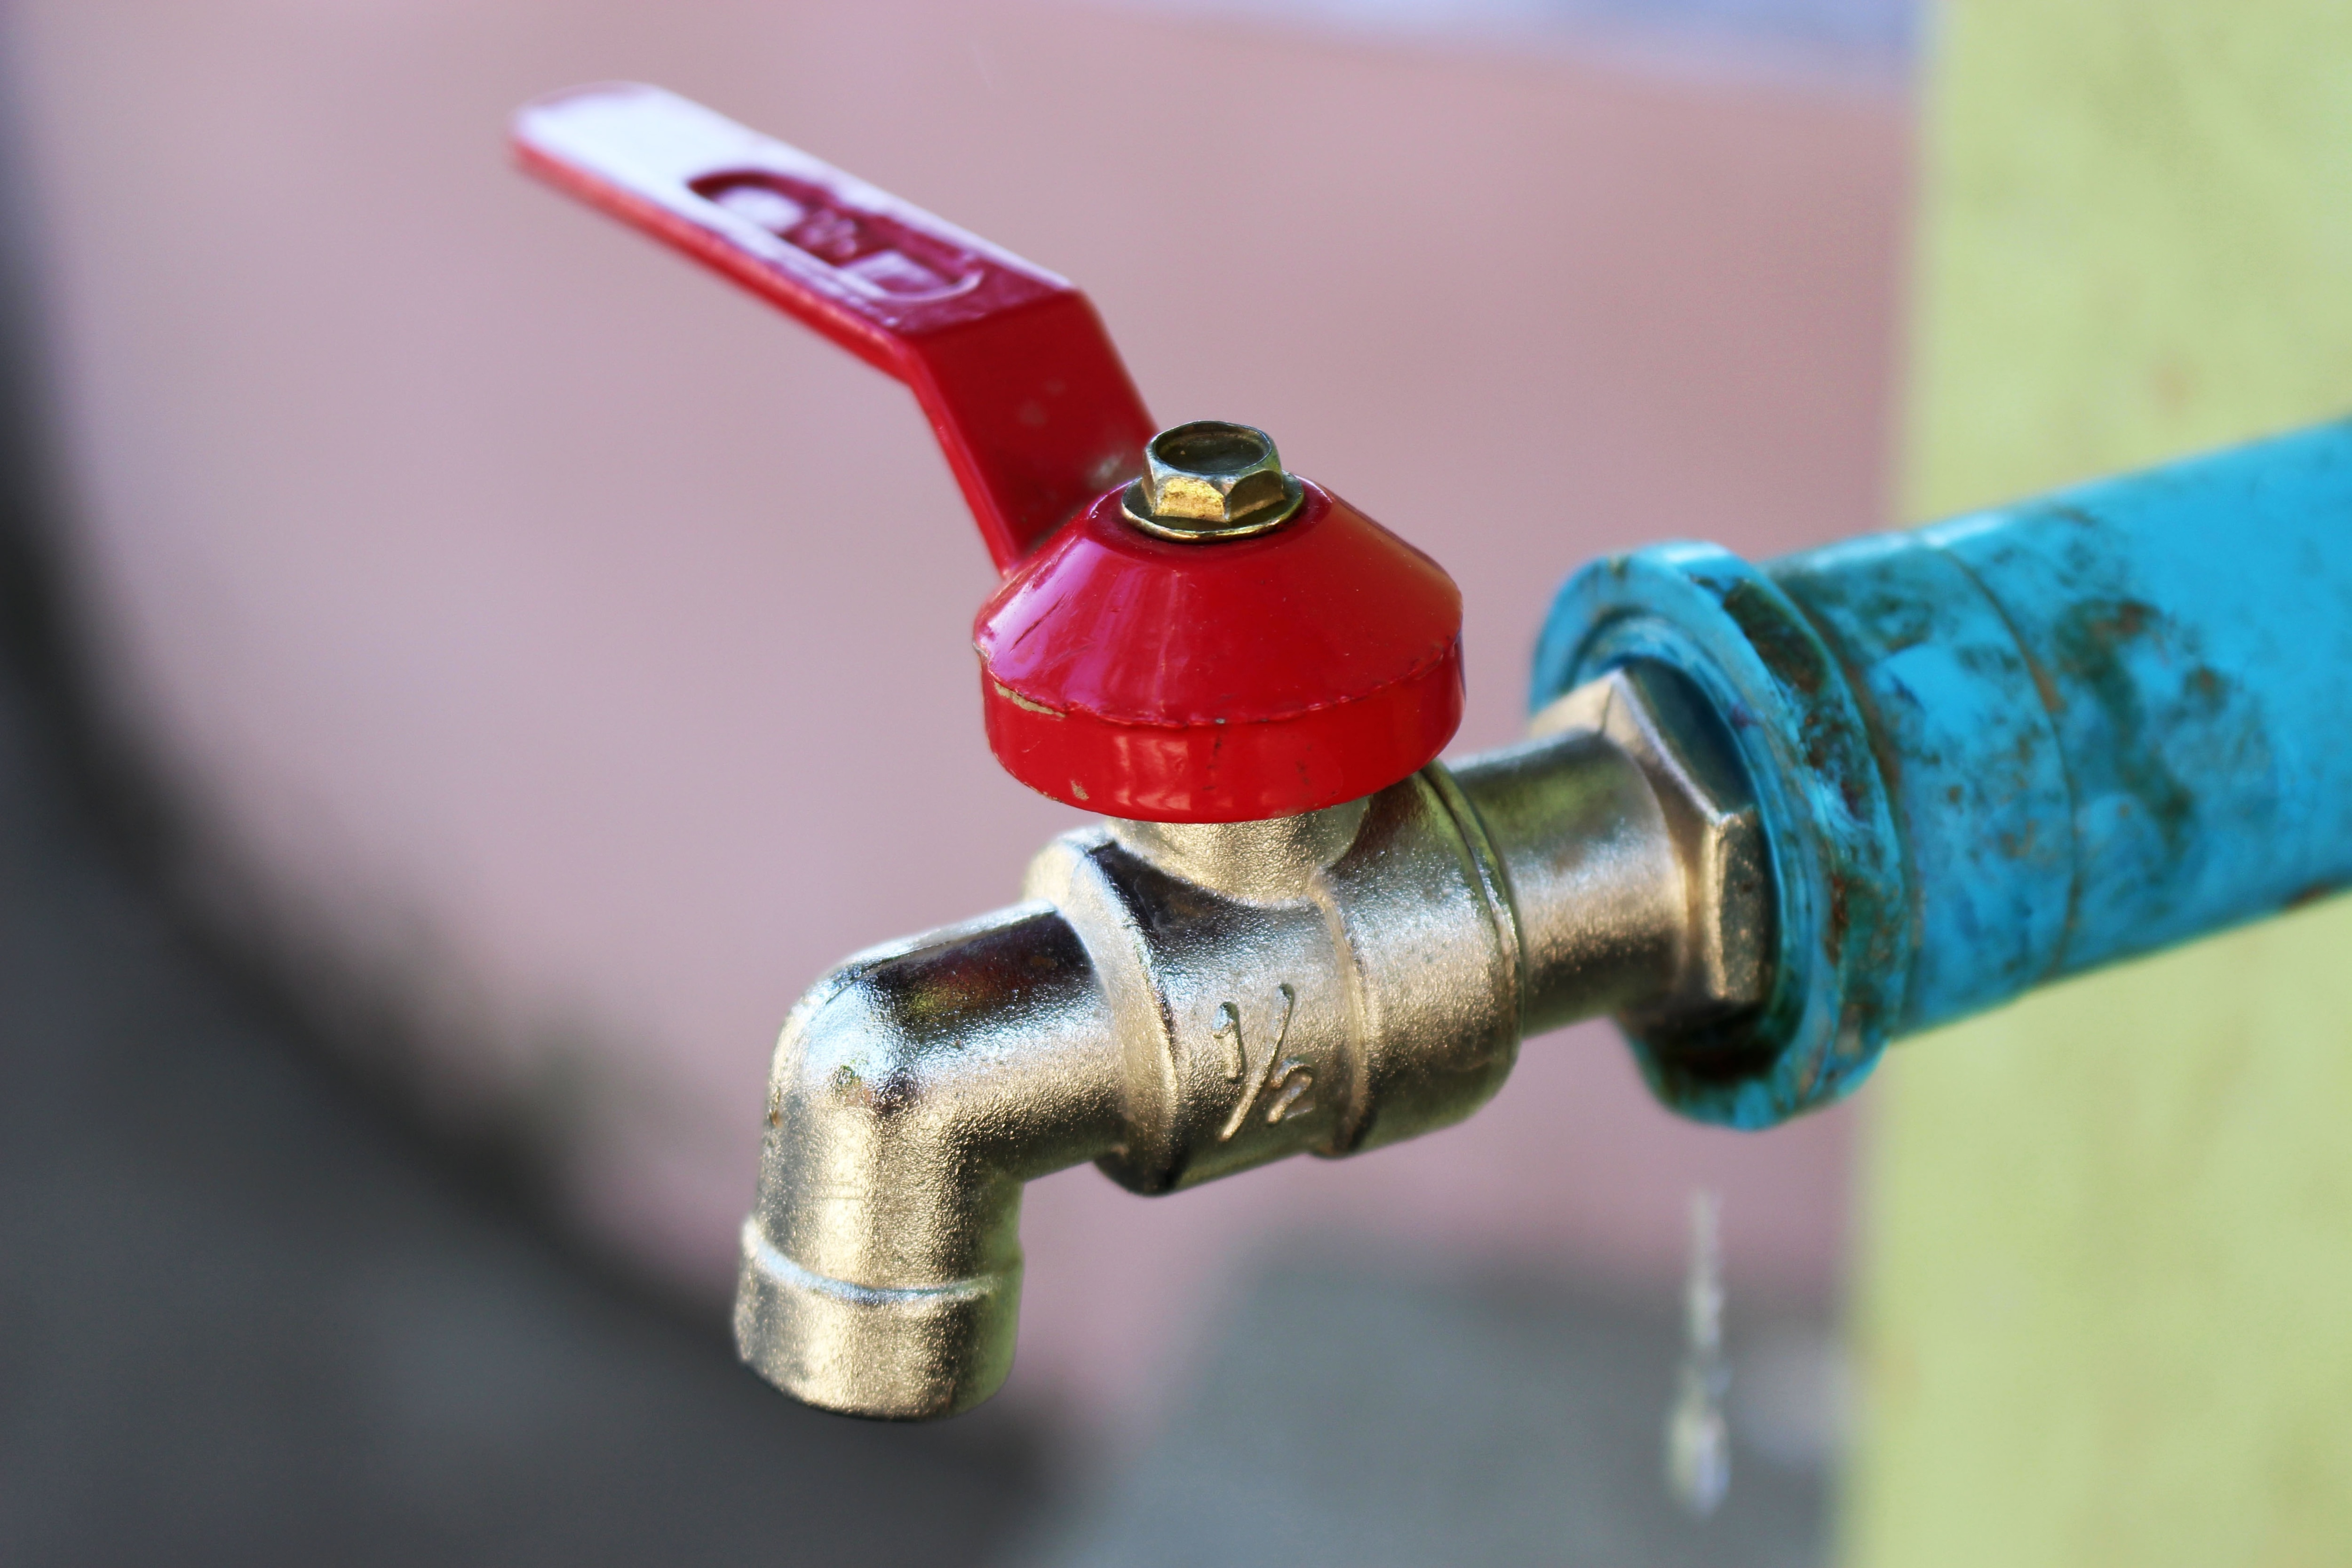 Outdoor water faucet with a red handle.